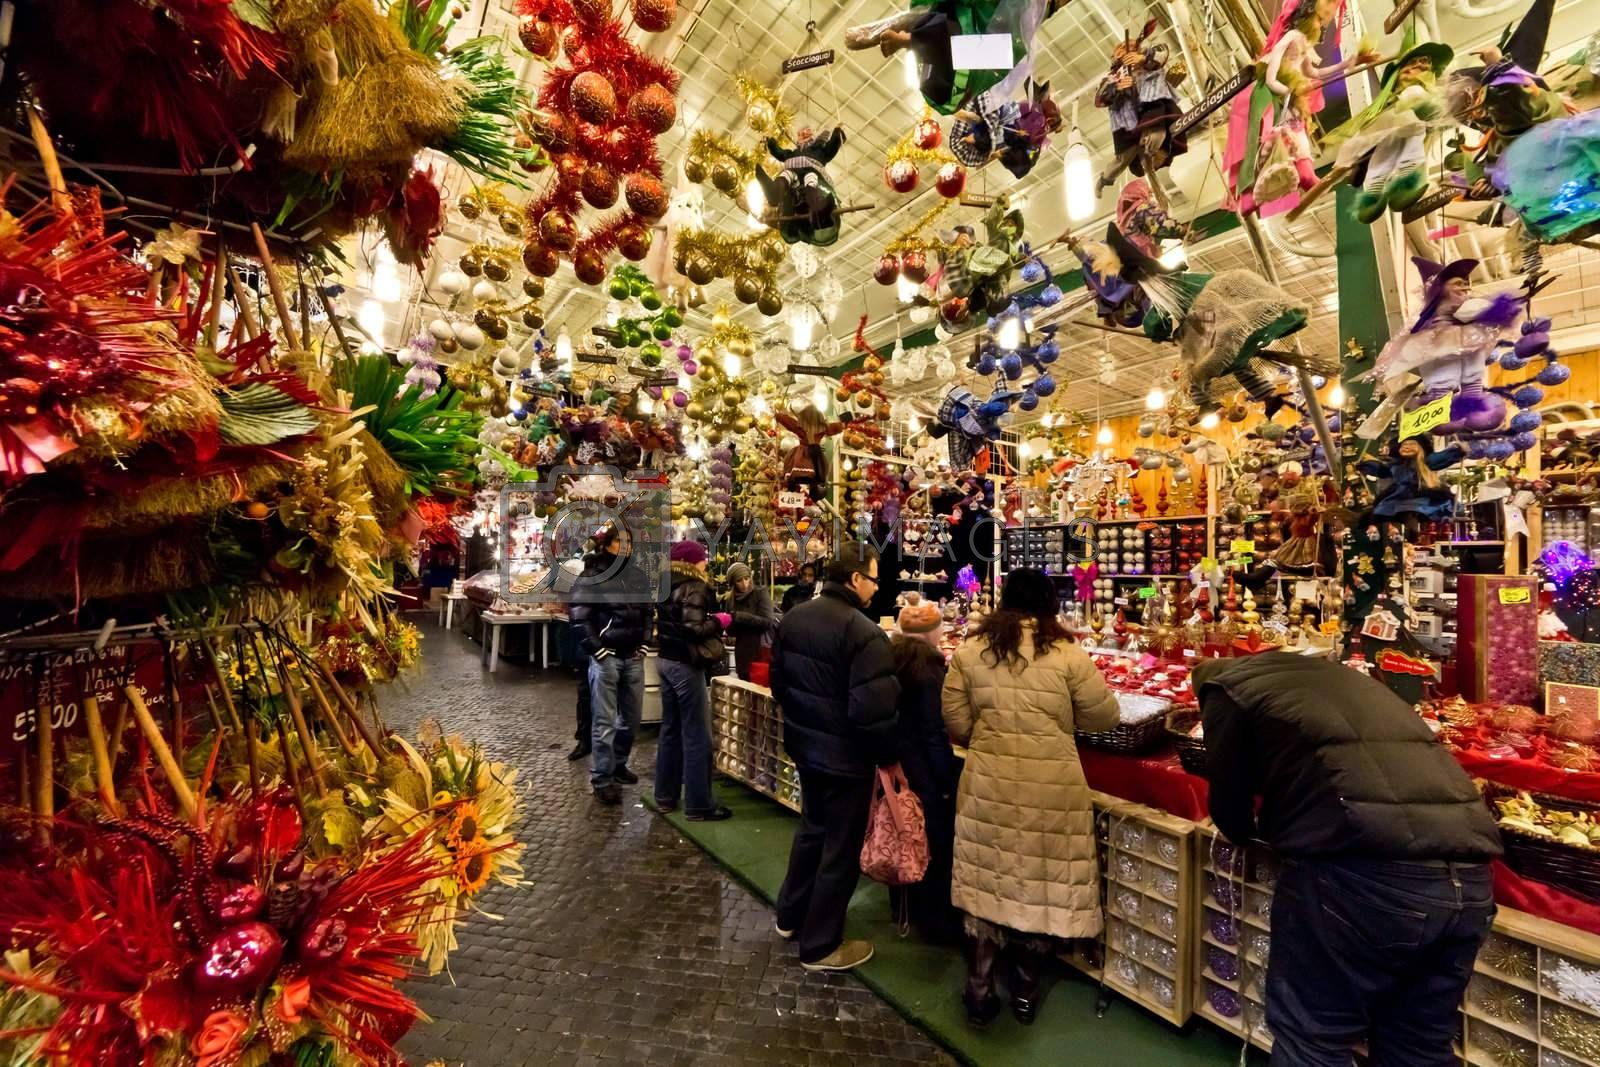 A flea market in the streets of Rome during Christmas time.